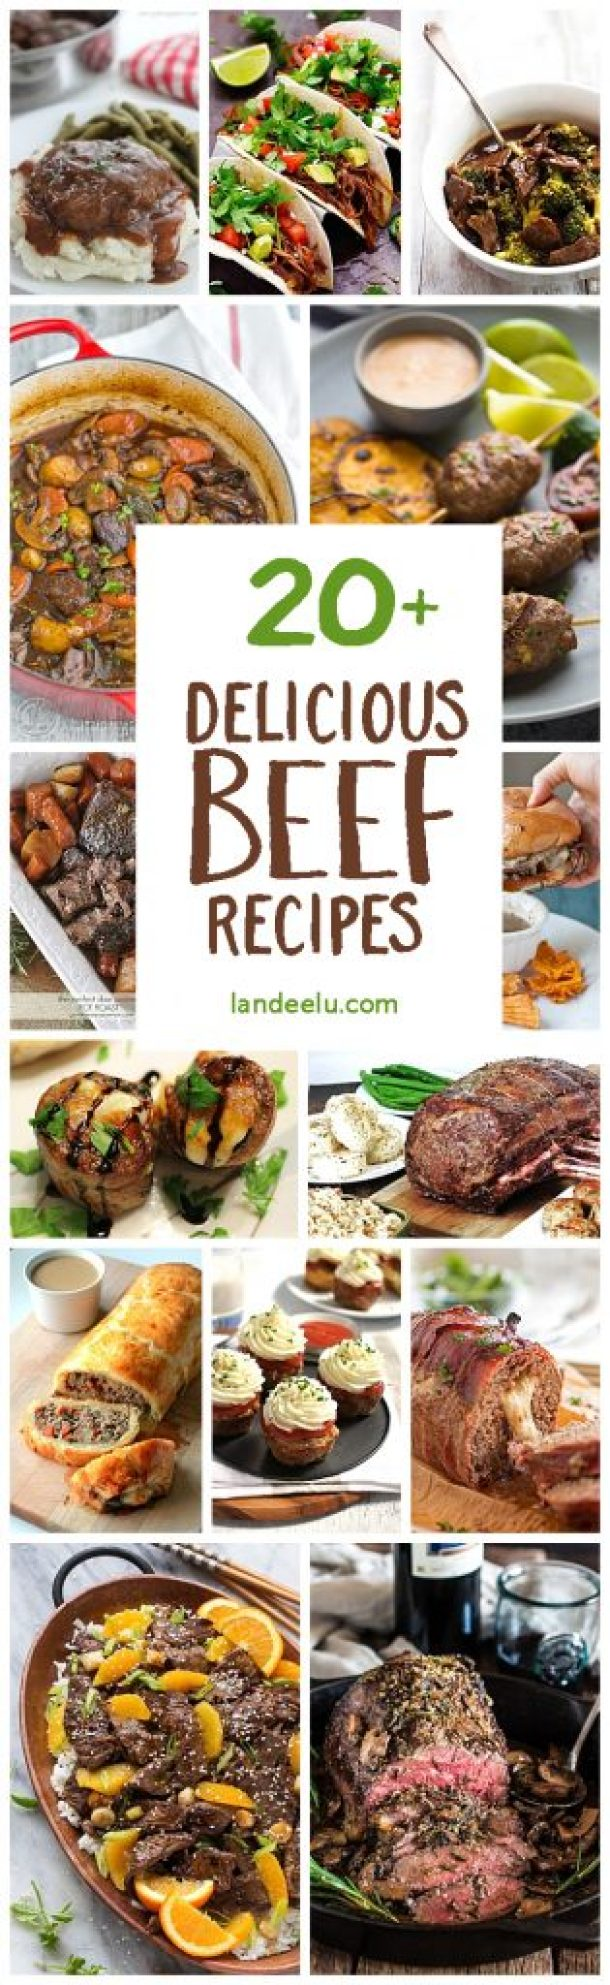 Those grilled steak bites look amazing! I can't wait to try them.